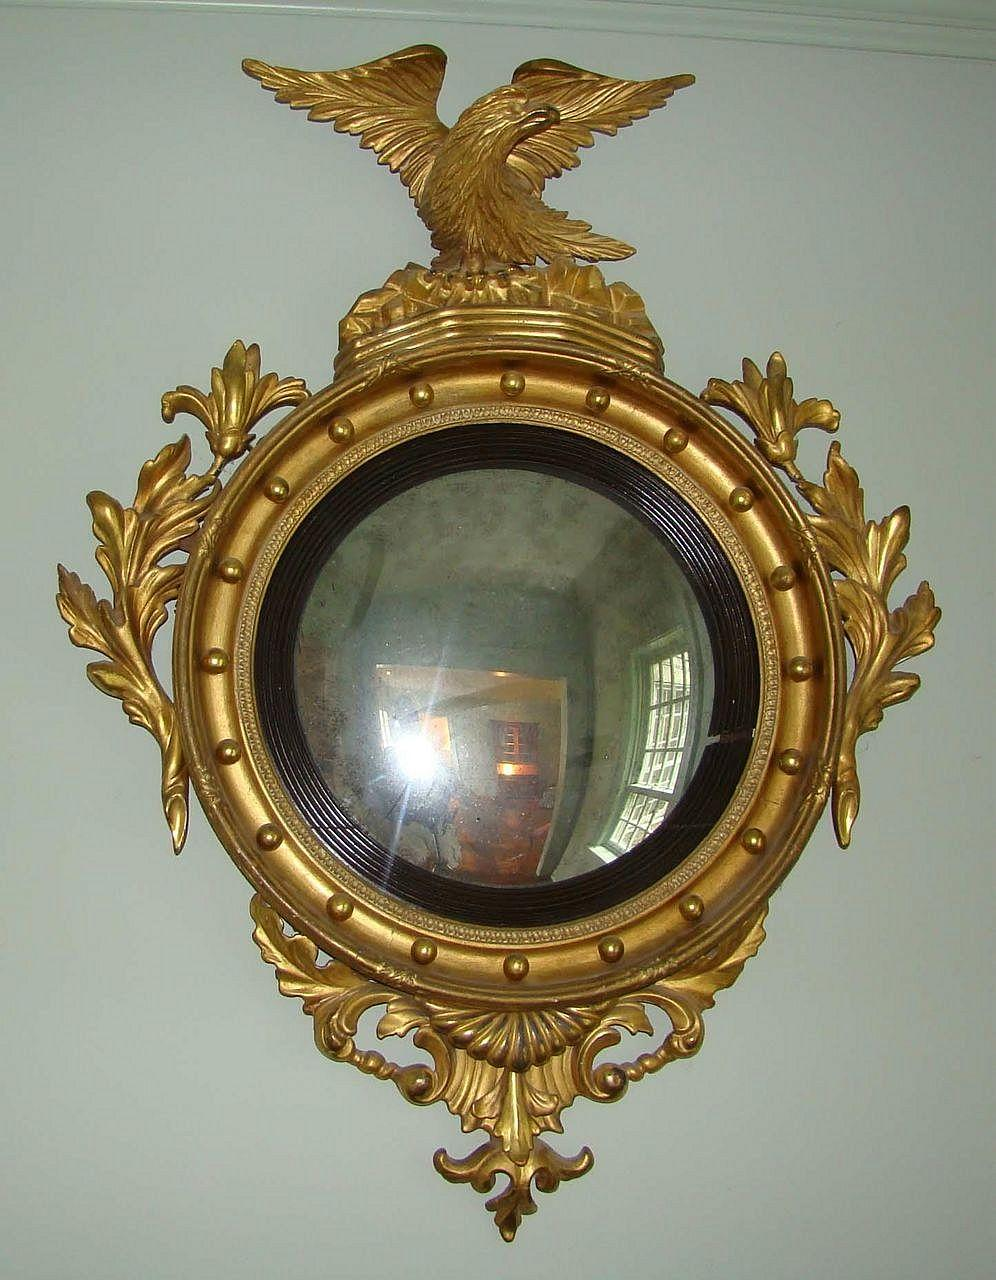 federal period convex mirror from wayne mattox antiques on